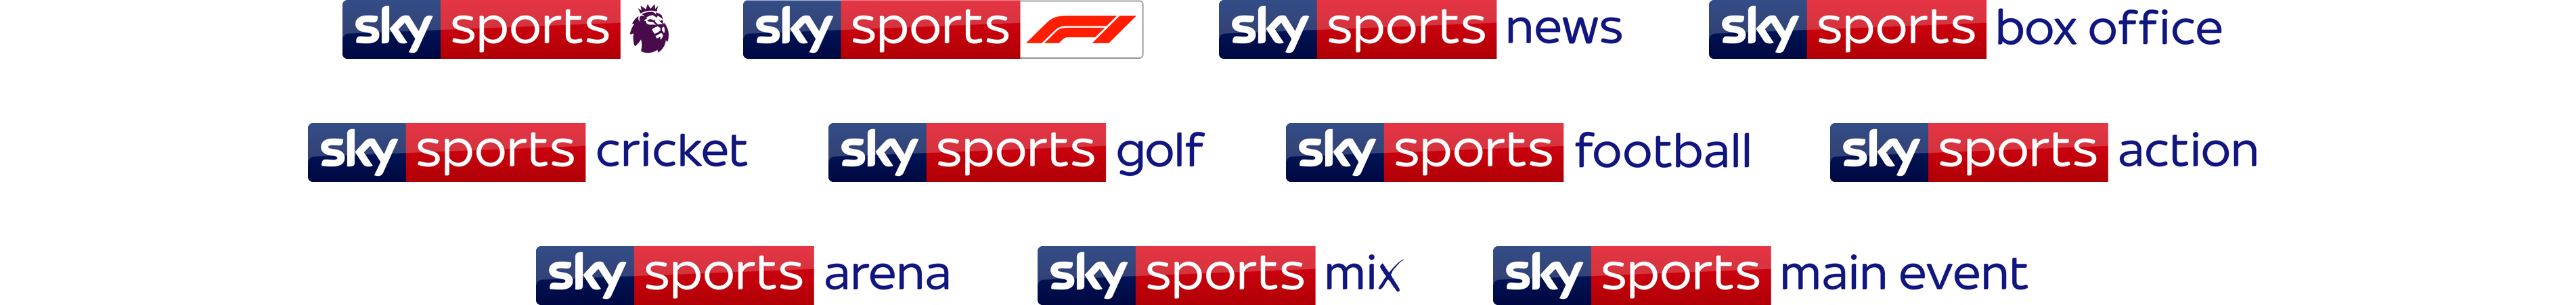 Best stream for sky sports box office